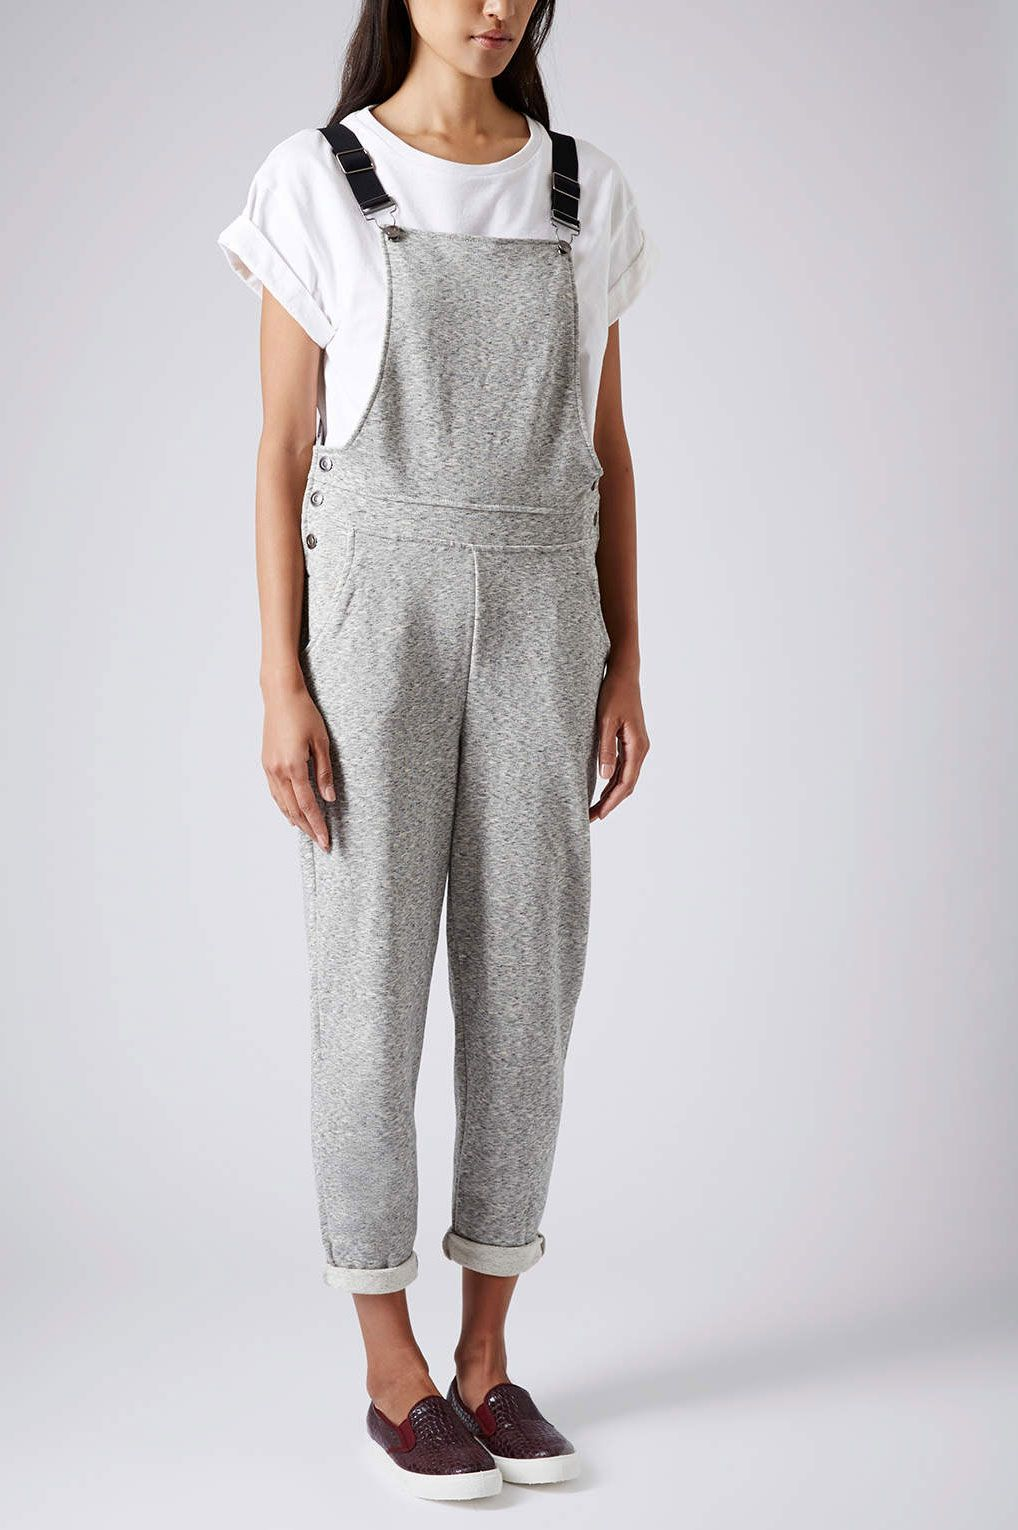 6cb46572e910 Sweatpants Overalls  Why didn t anyone tell me about these before  This is  a perfect item for